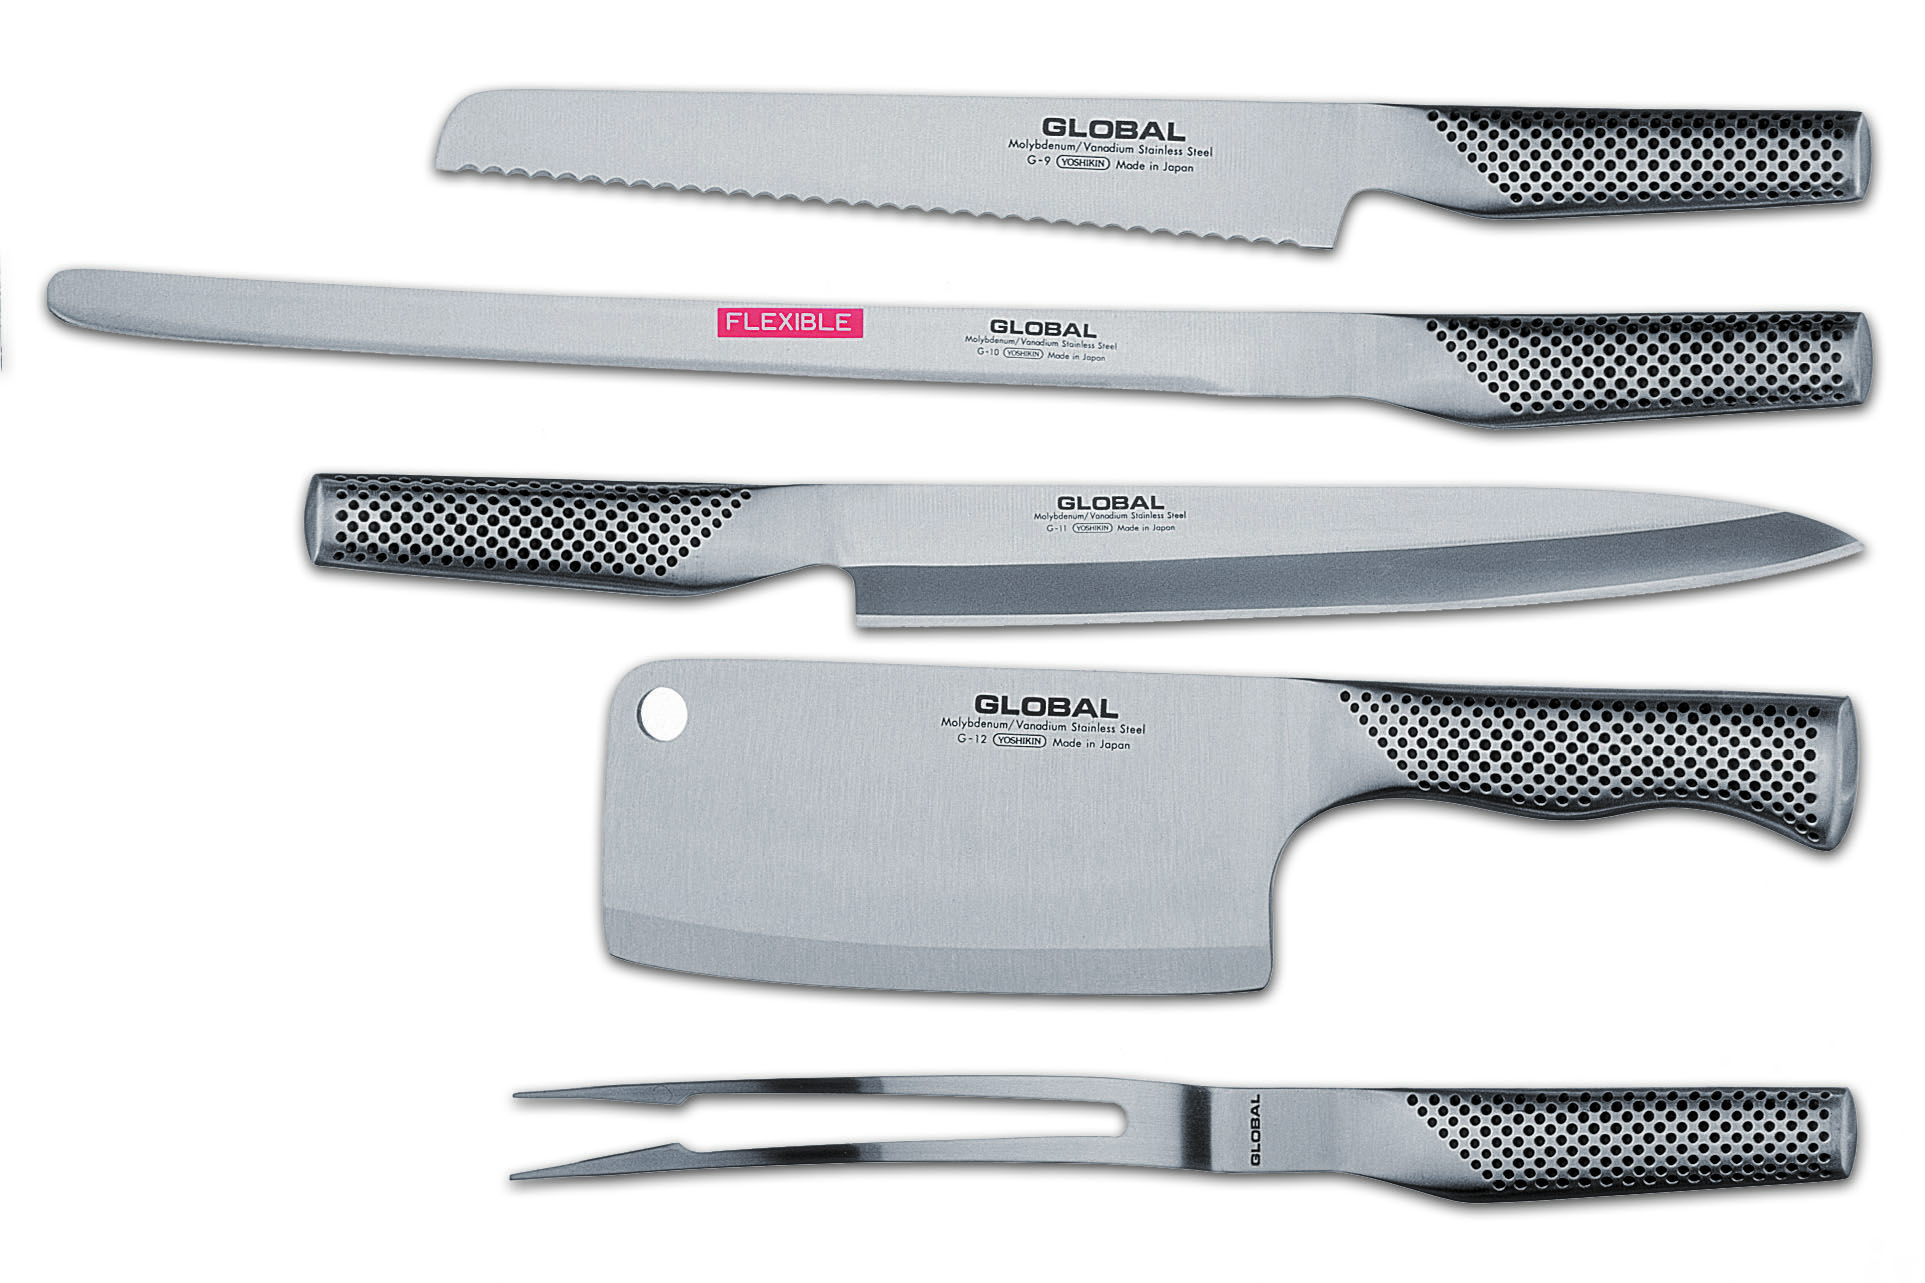 Global Küchenmesser Global Knives Classic Range ножи Global Knives Kitchen Knives